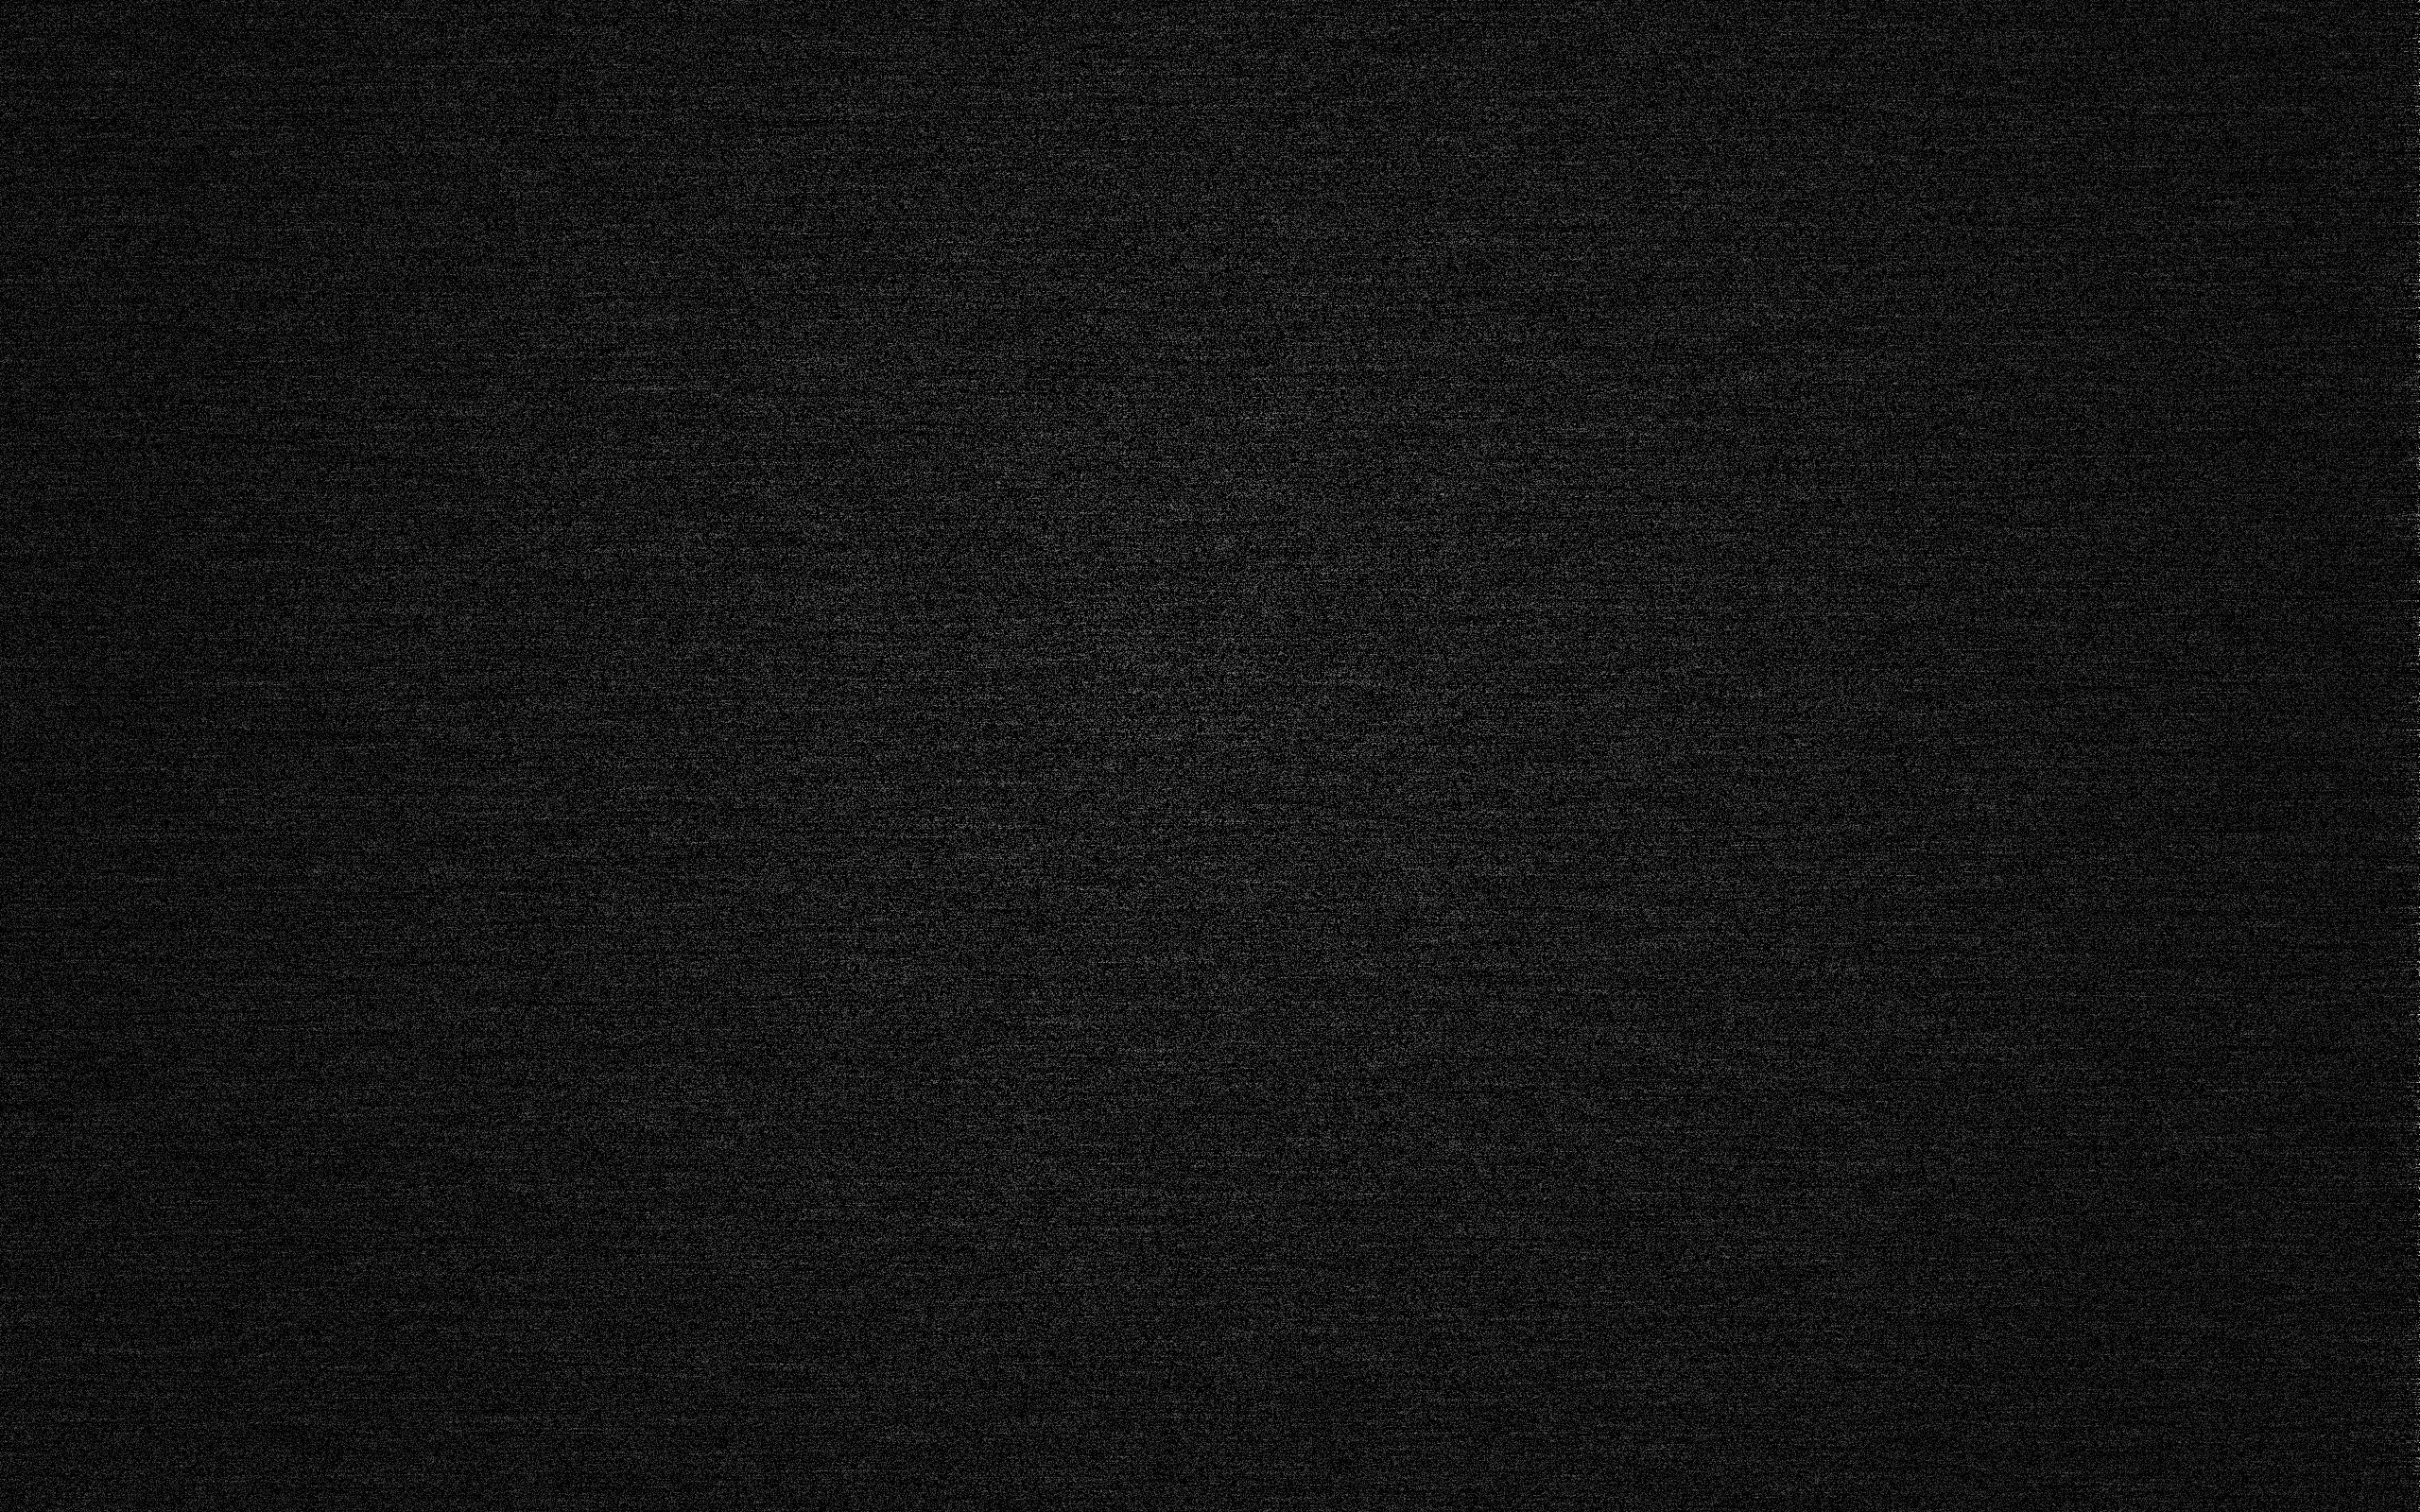 Black Cloth Wallpaper